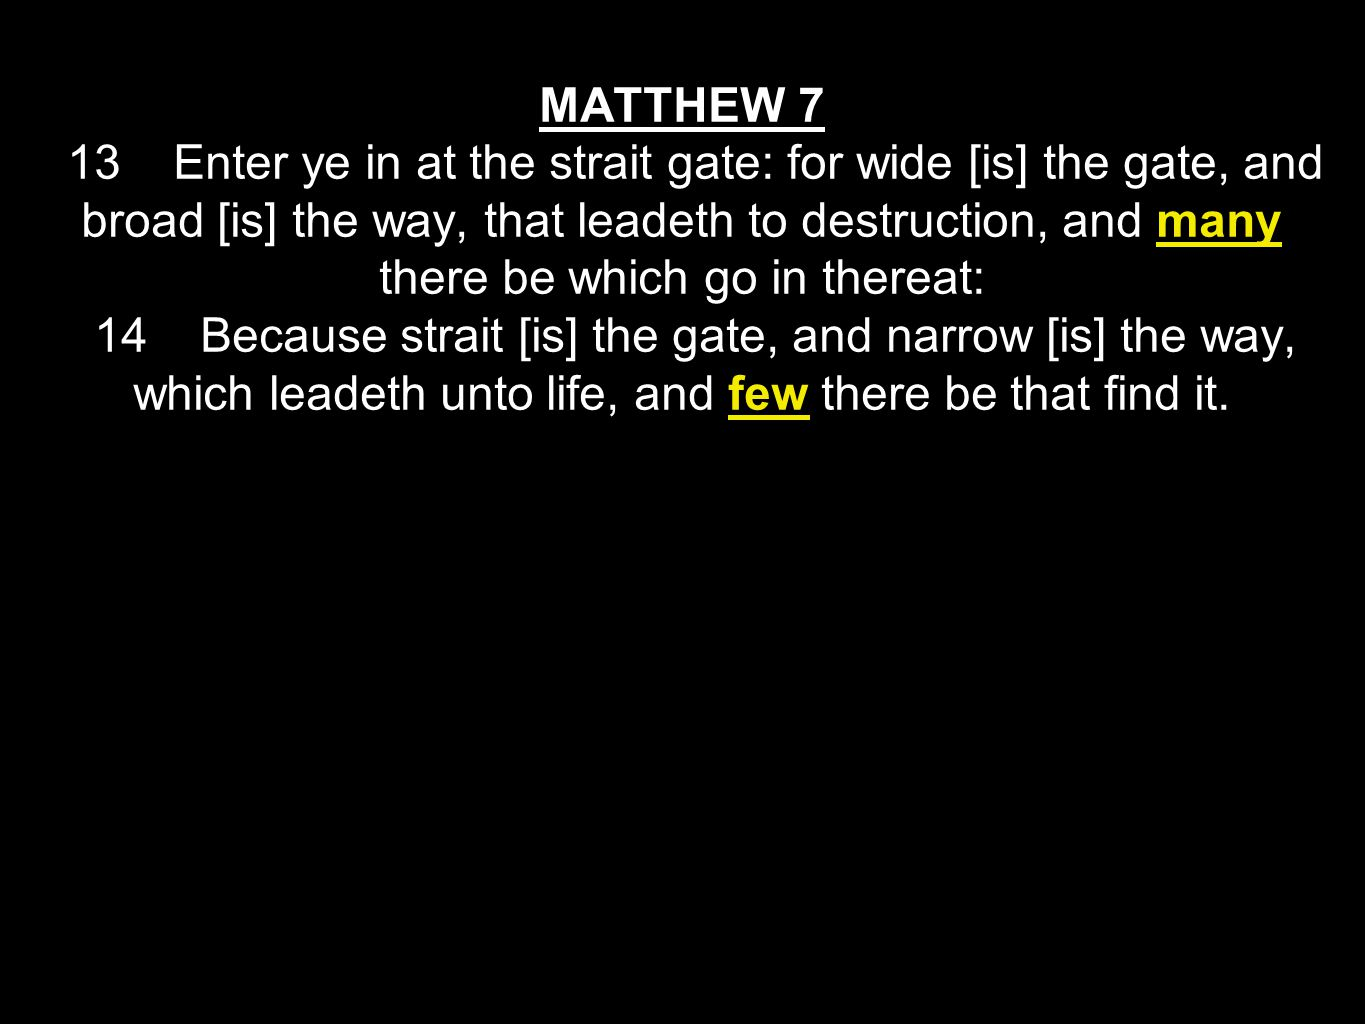 MATTHEW 7 13 Enter ye in at the strait gate: for wide [is] the gate, and broad [is] the way, that leadeth to destruction, and many there be which go i